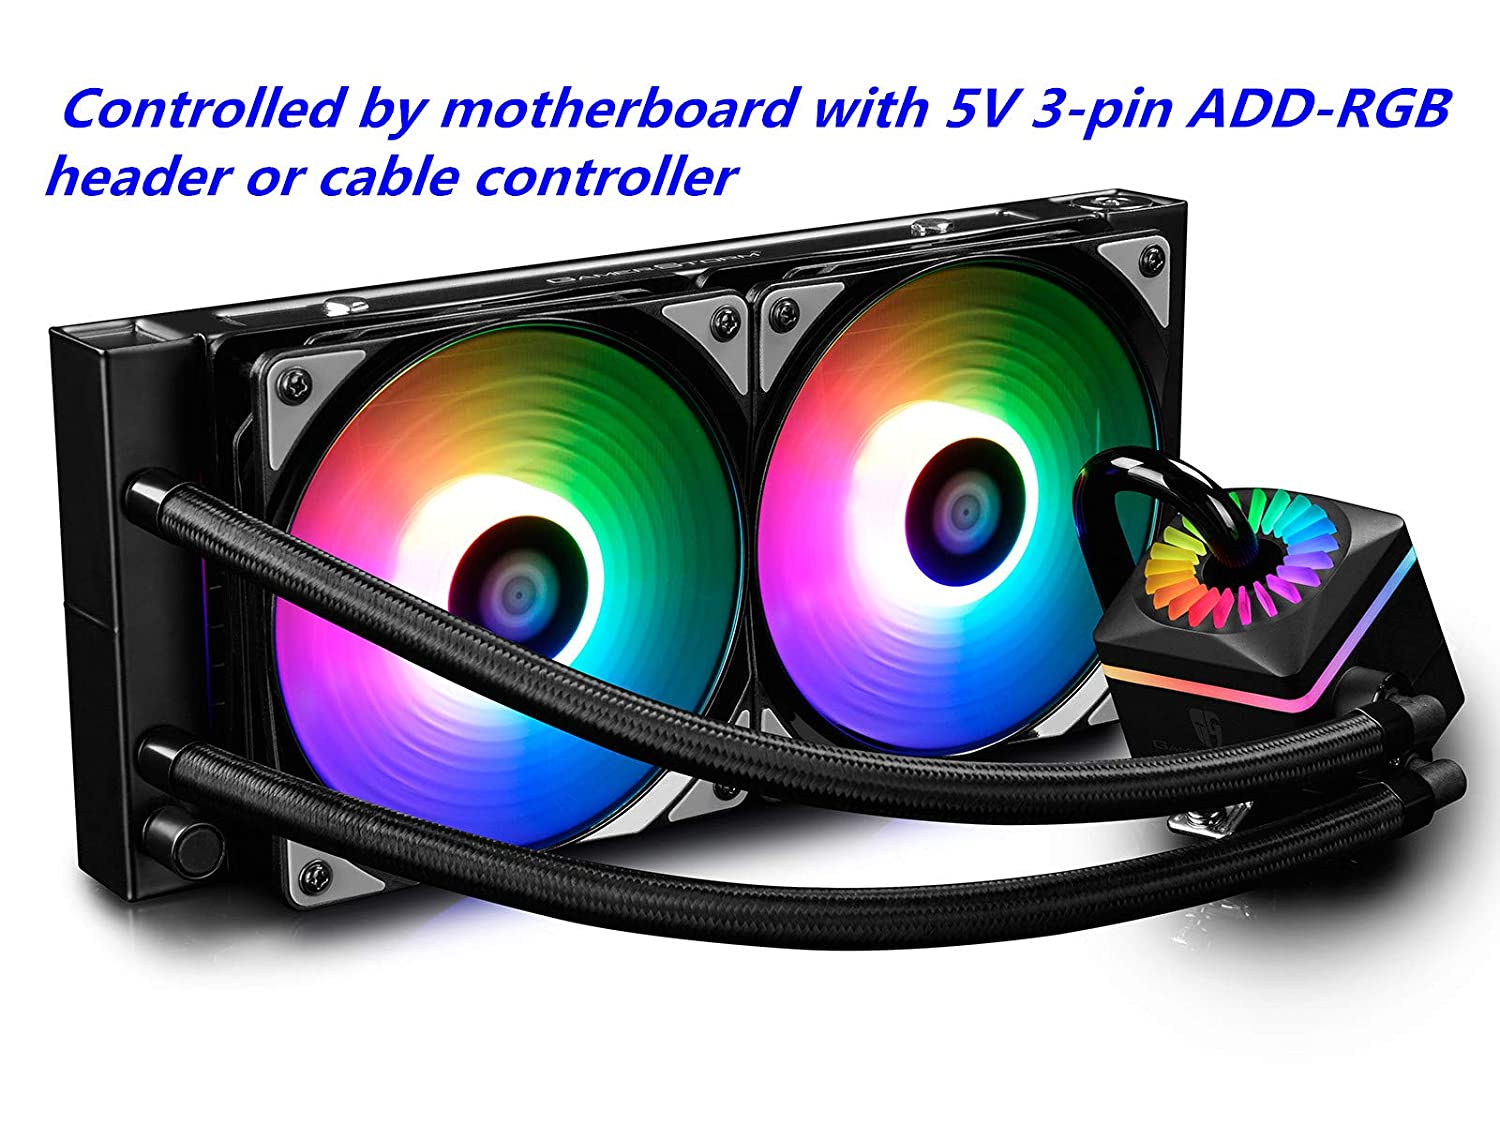 DEEP COOL Captain 240PRO Addressable RGB AIO CPU Liquid Cooler, Cable Controller and 5V ADD RGB 3-Pin Motherboard Control, Intel 115X/2066 and AMD TR4/AM4 Compatible, 3-Year Warranty